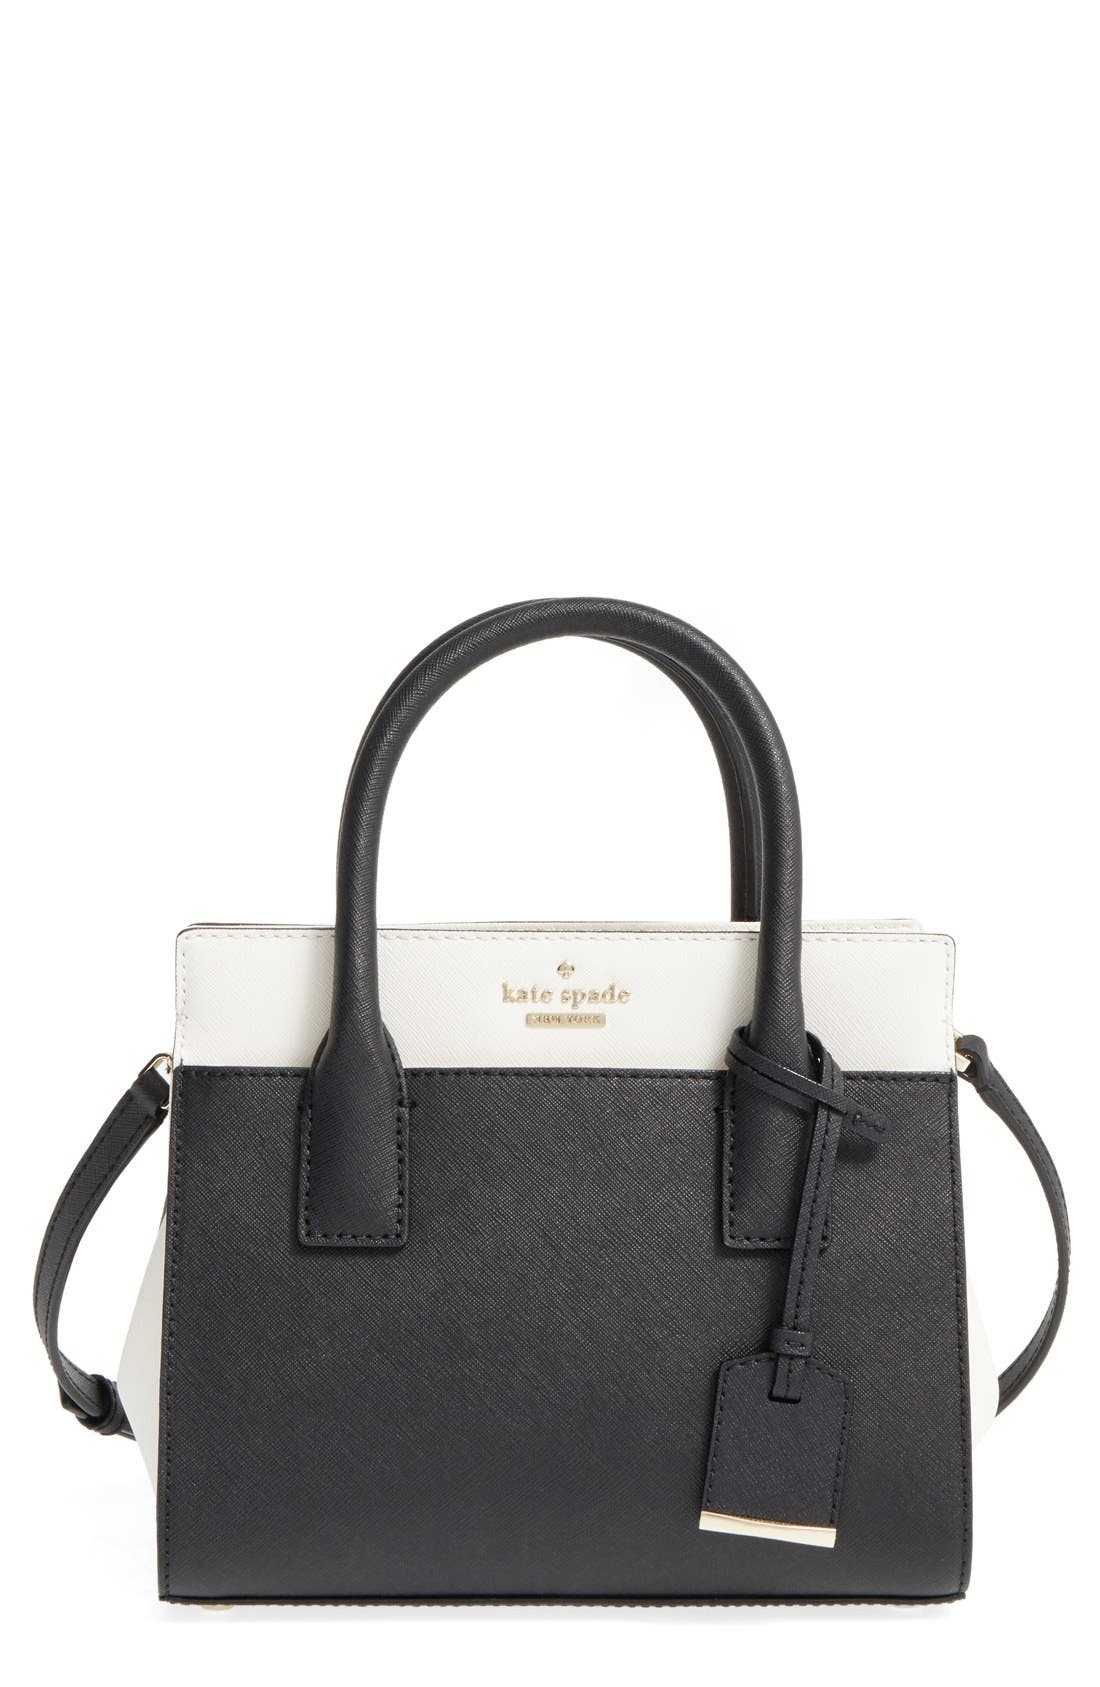 Main Image - kate spade new york 'cameron street - mini candace' leather satchel